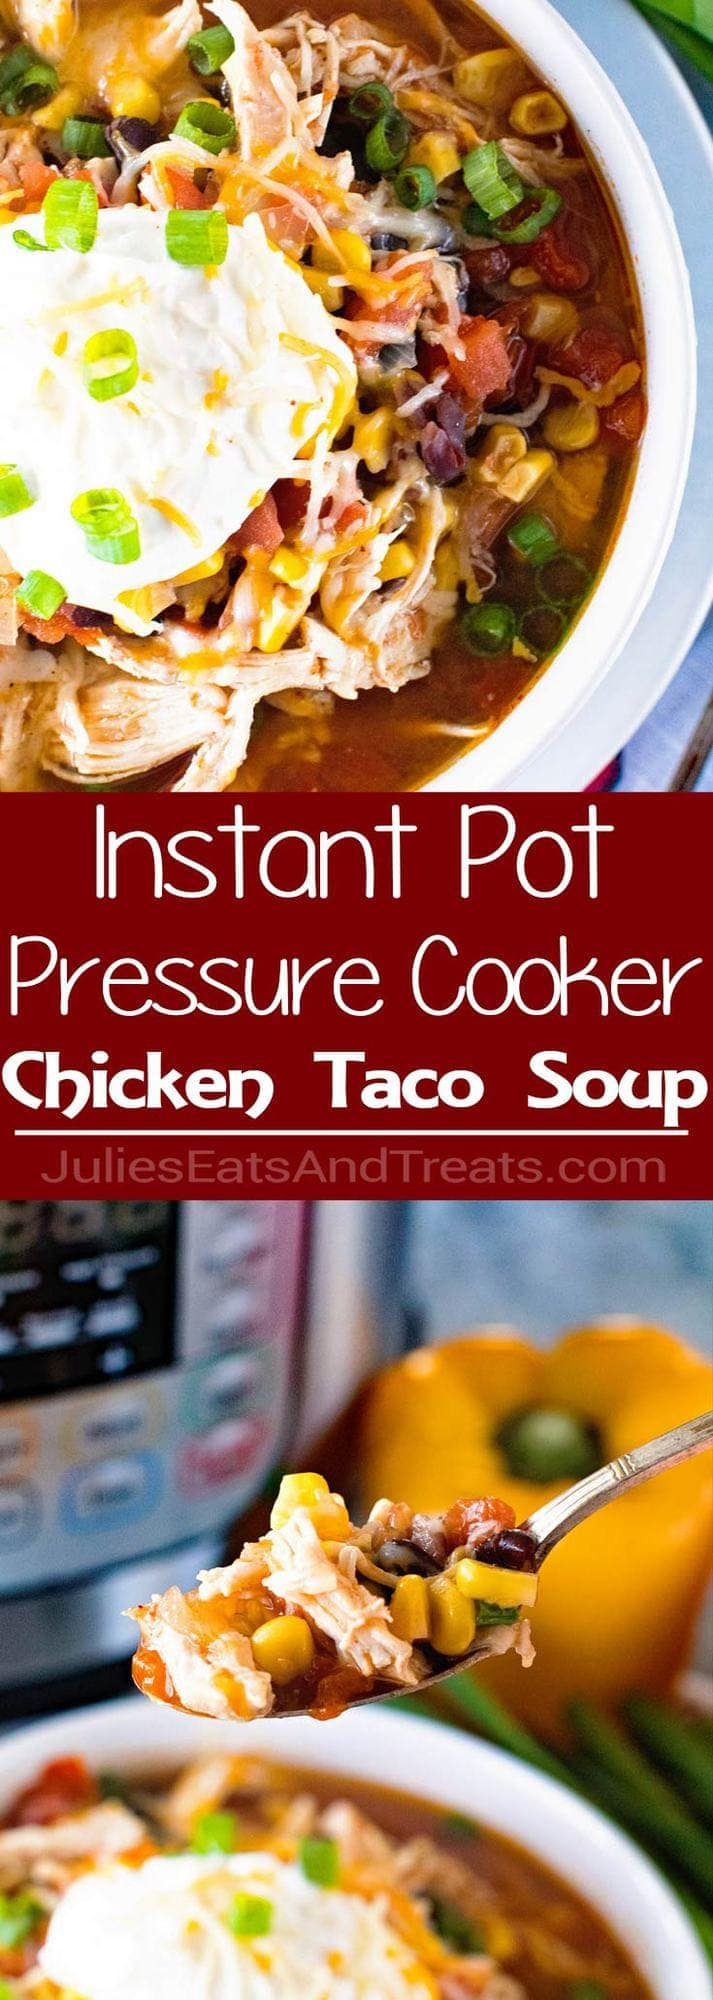 {Instant Pot} Pressure Cooker Chicken Taco Soup ~ Quick, Easy Homemade Taco Soup with Shredded Chicken! Warm Up with a Big Bowl of this Taco Soup Made in Your Pressure Cooker!